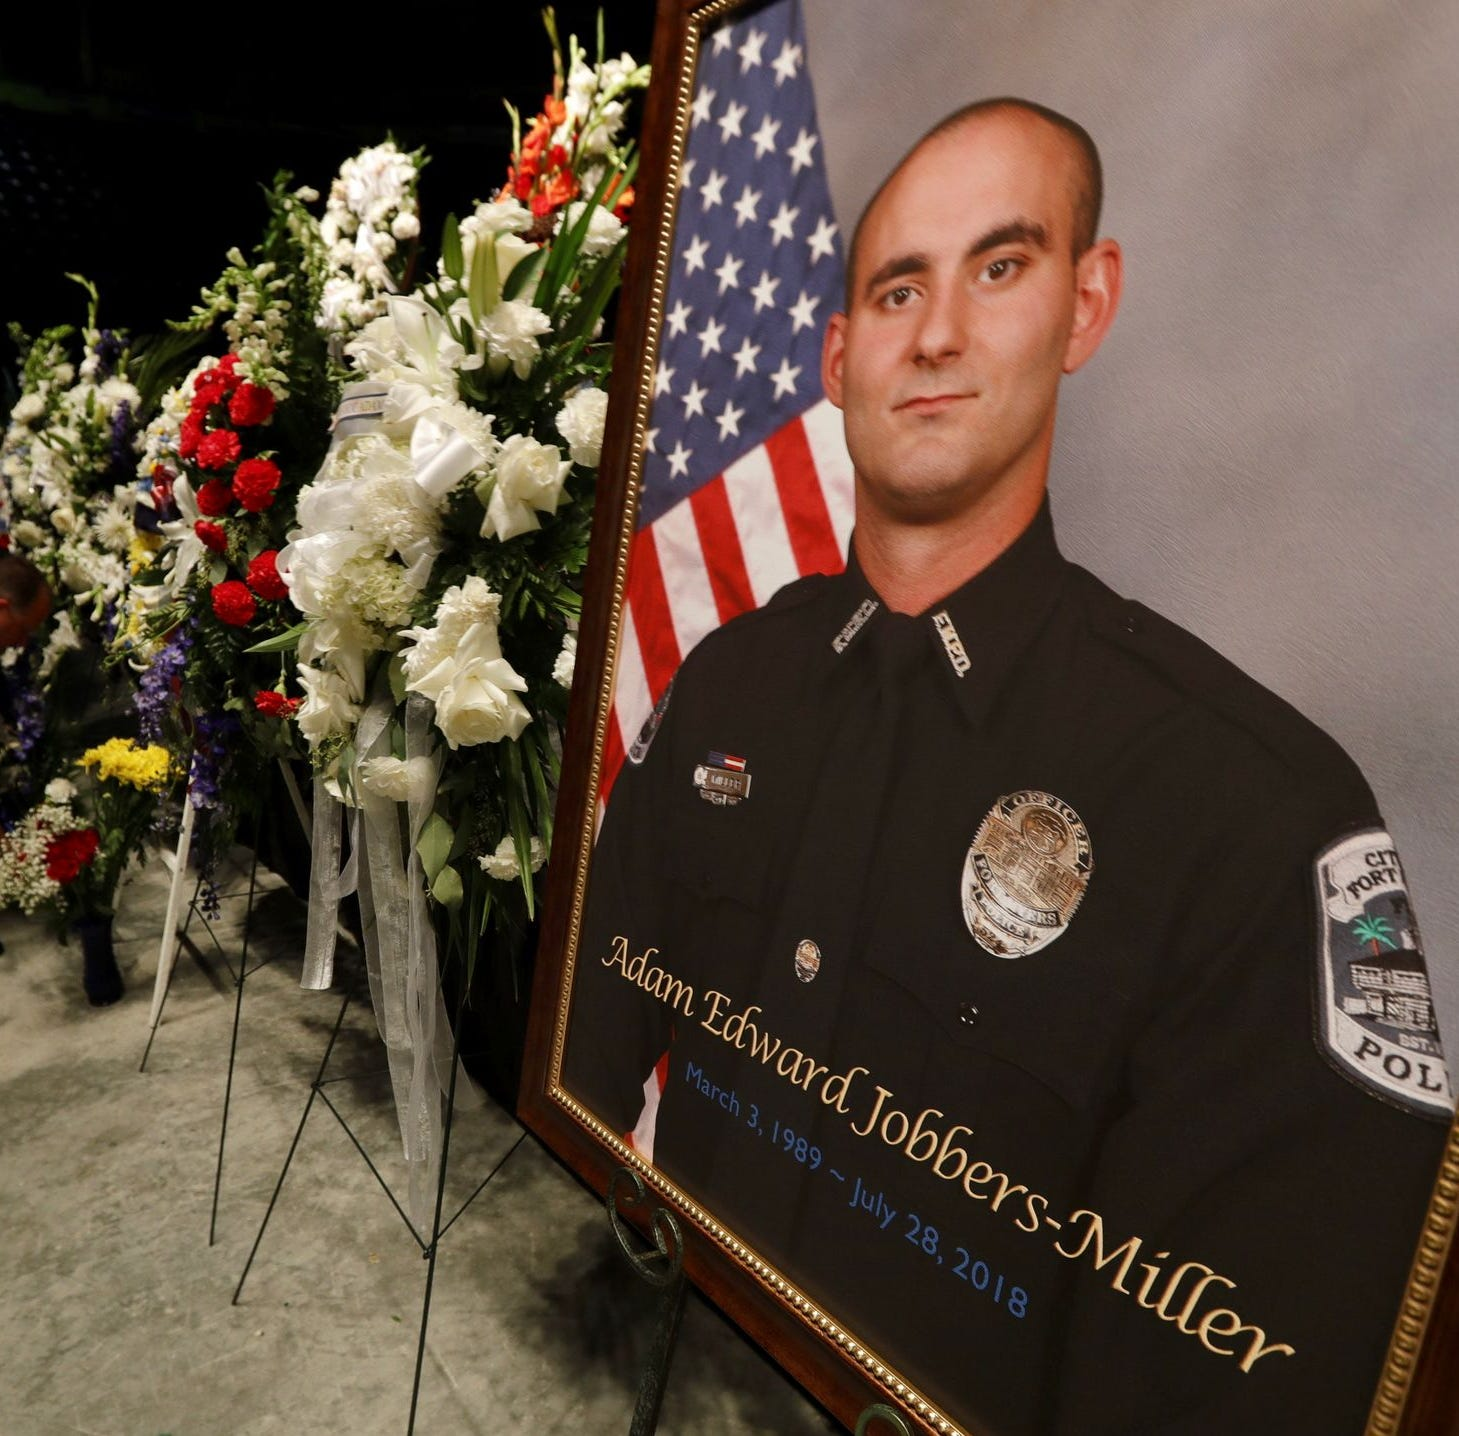 Fort Myers policeman Jobbers-Miller's name to be added to D.C. fallen officer's memorial